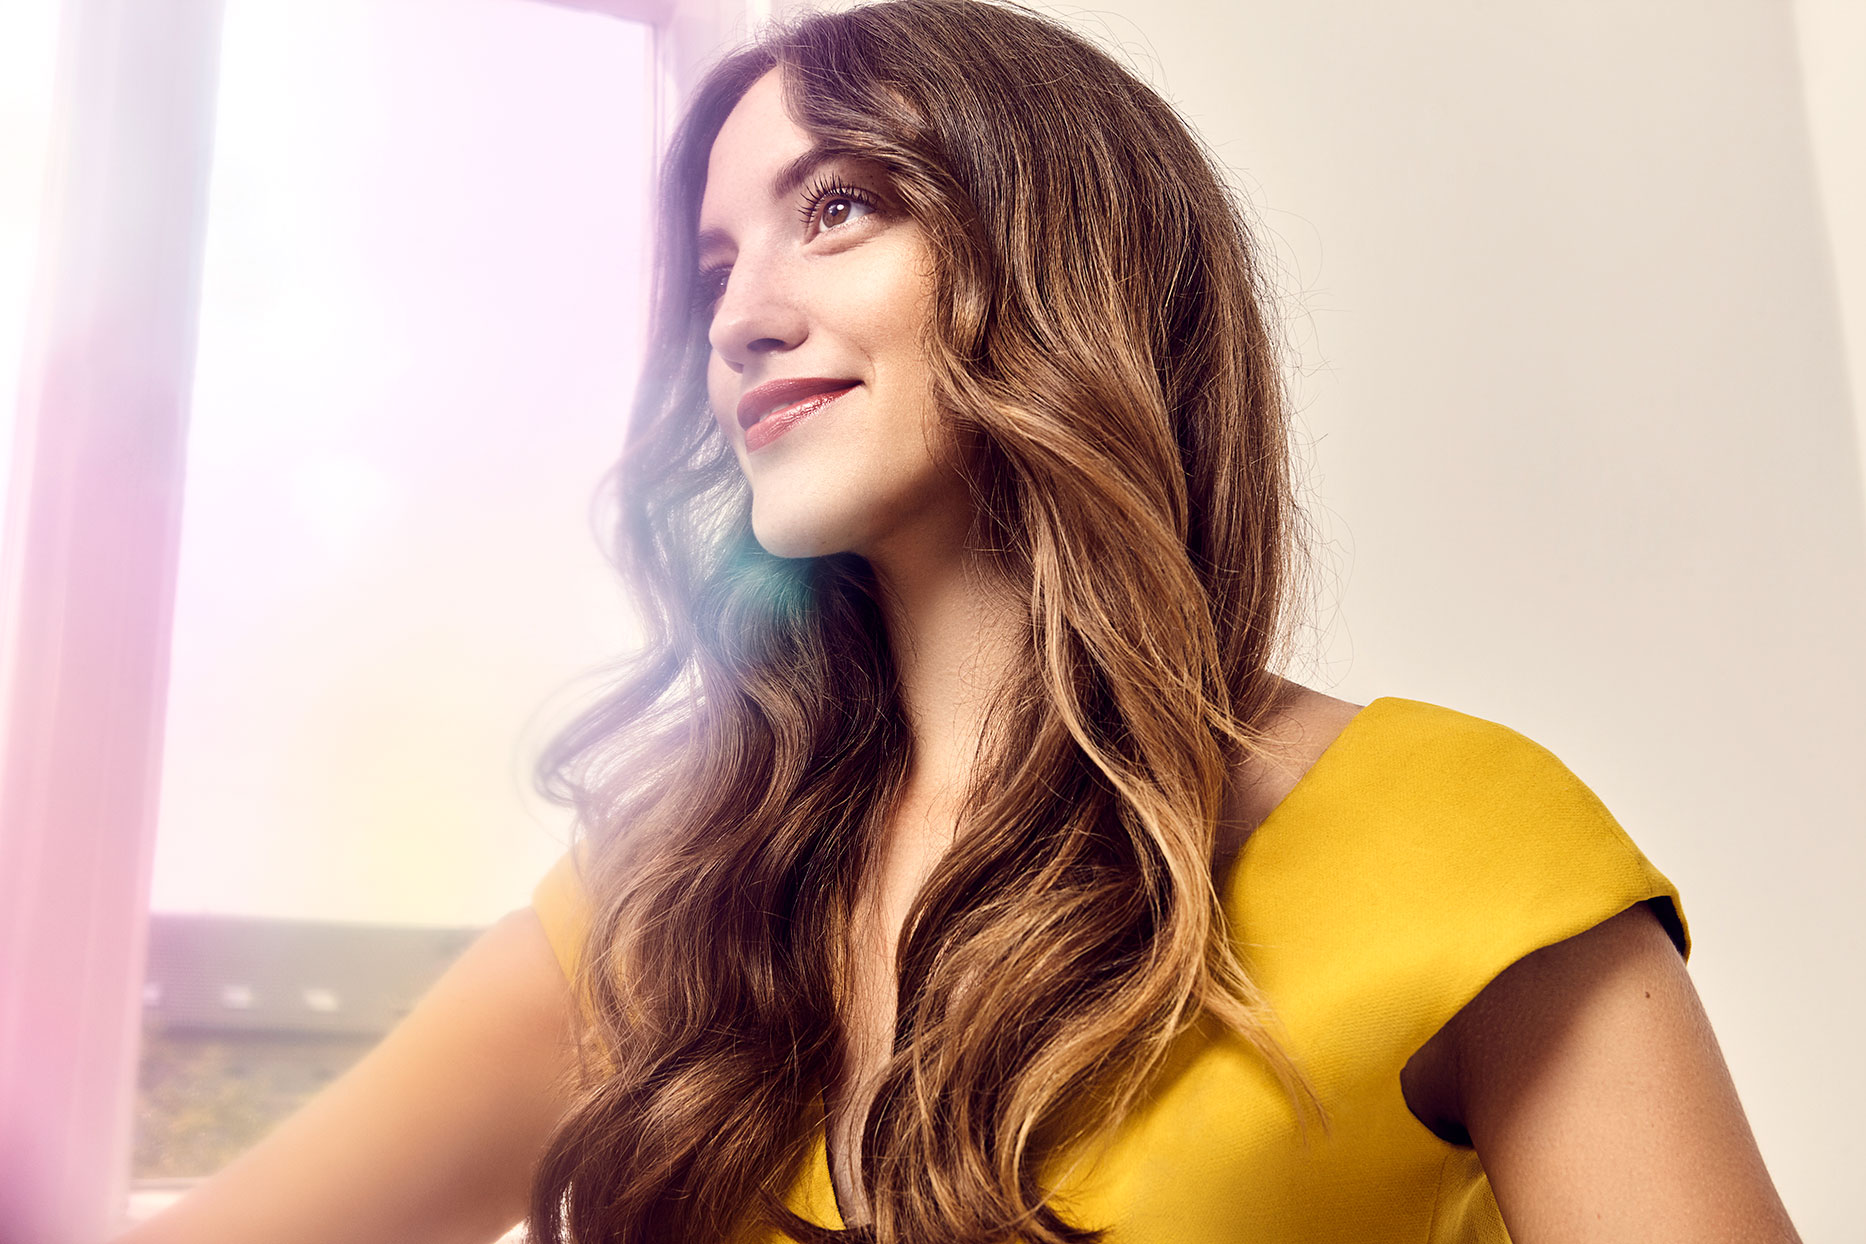 woman with shiny hair